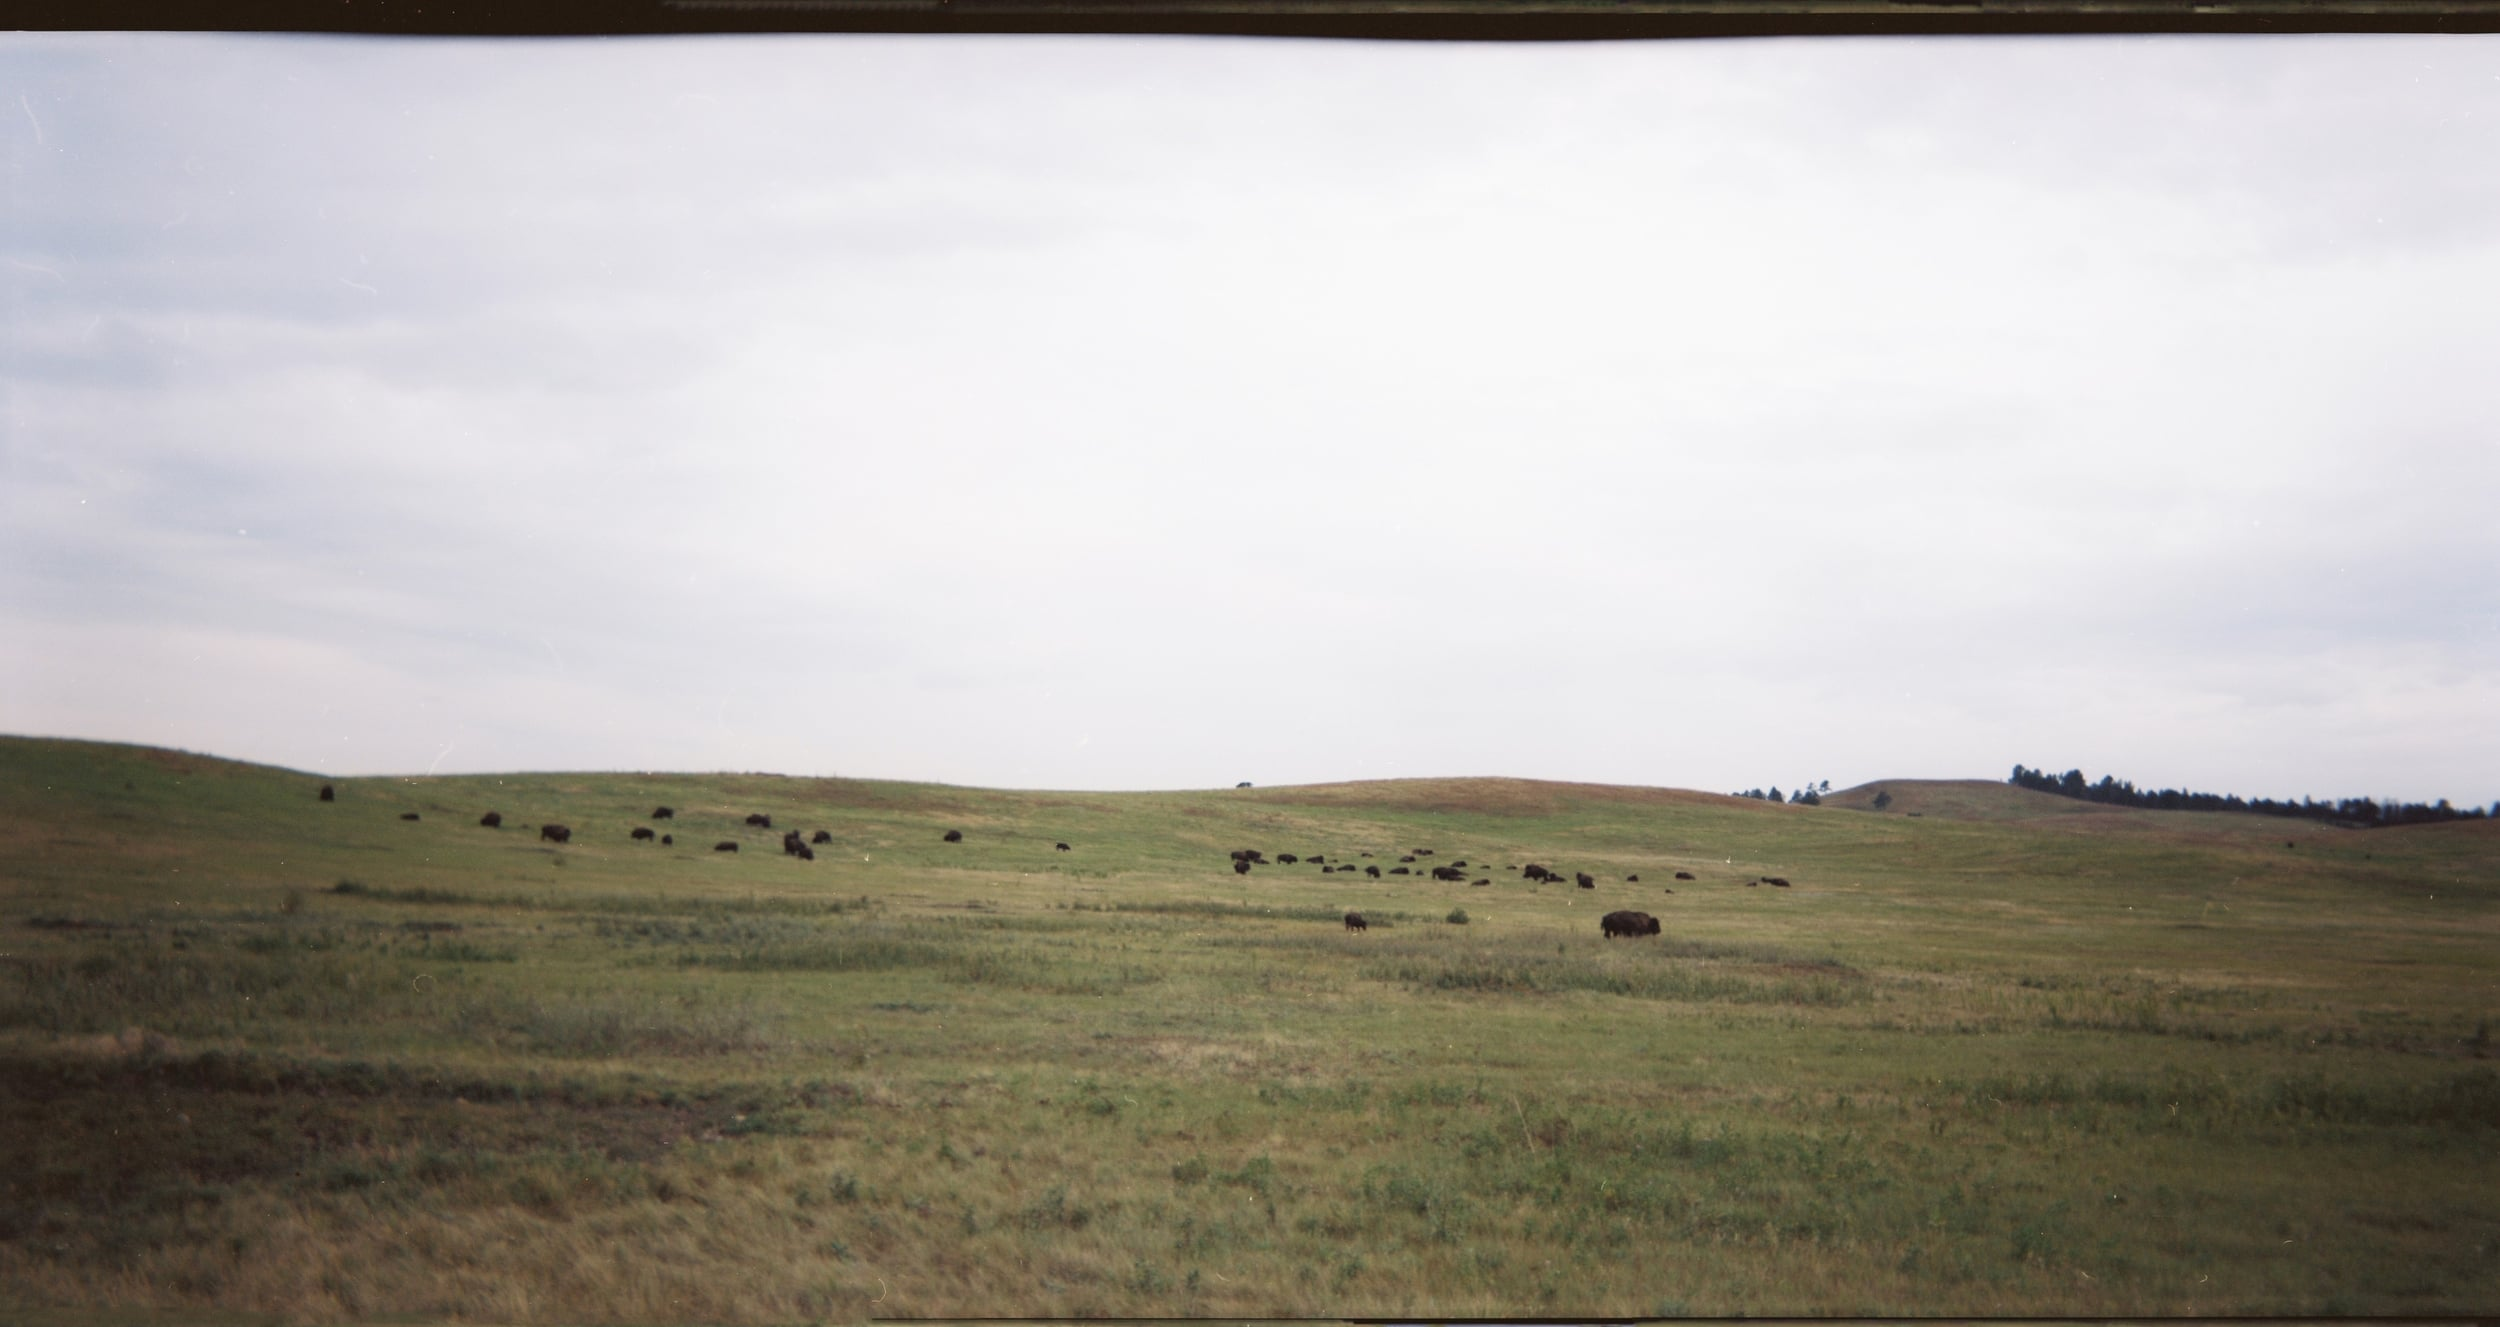 Buffaloes in Custer State Park